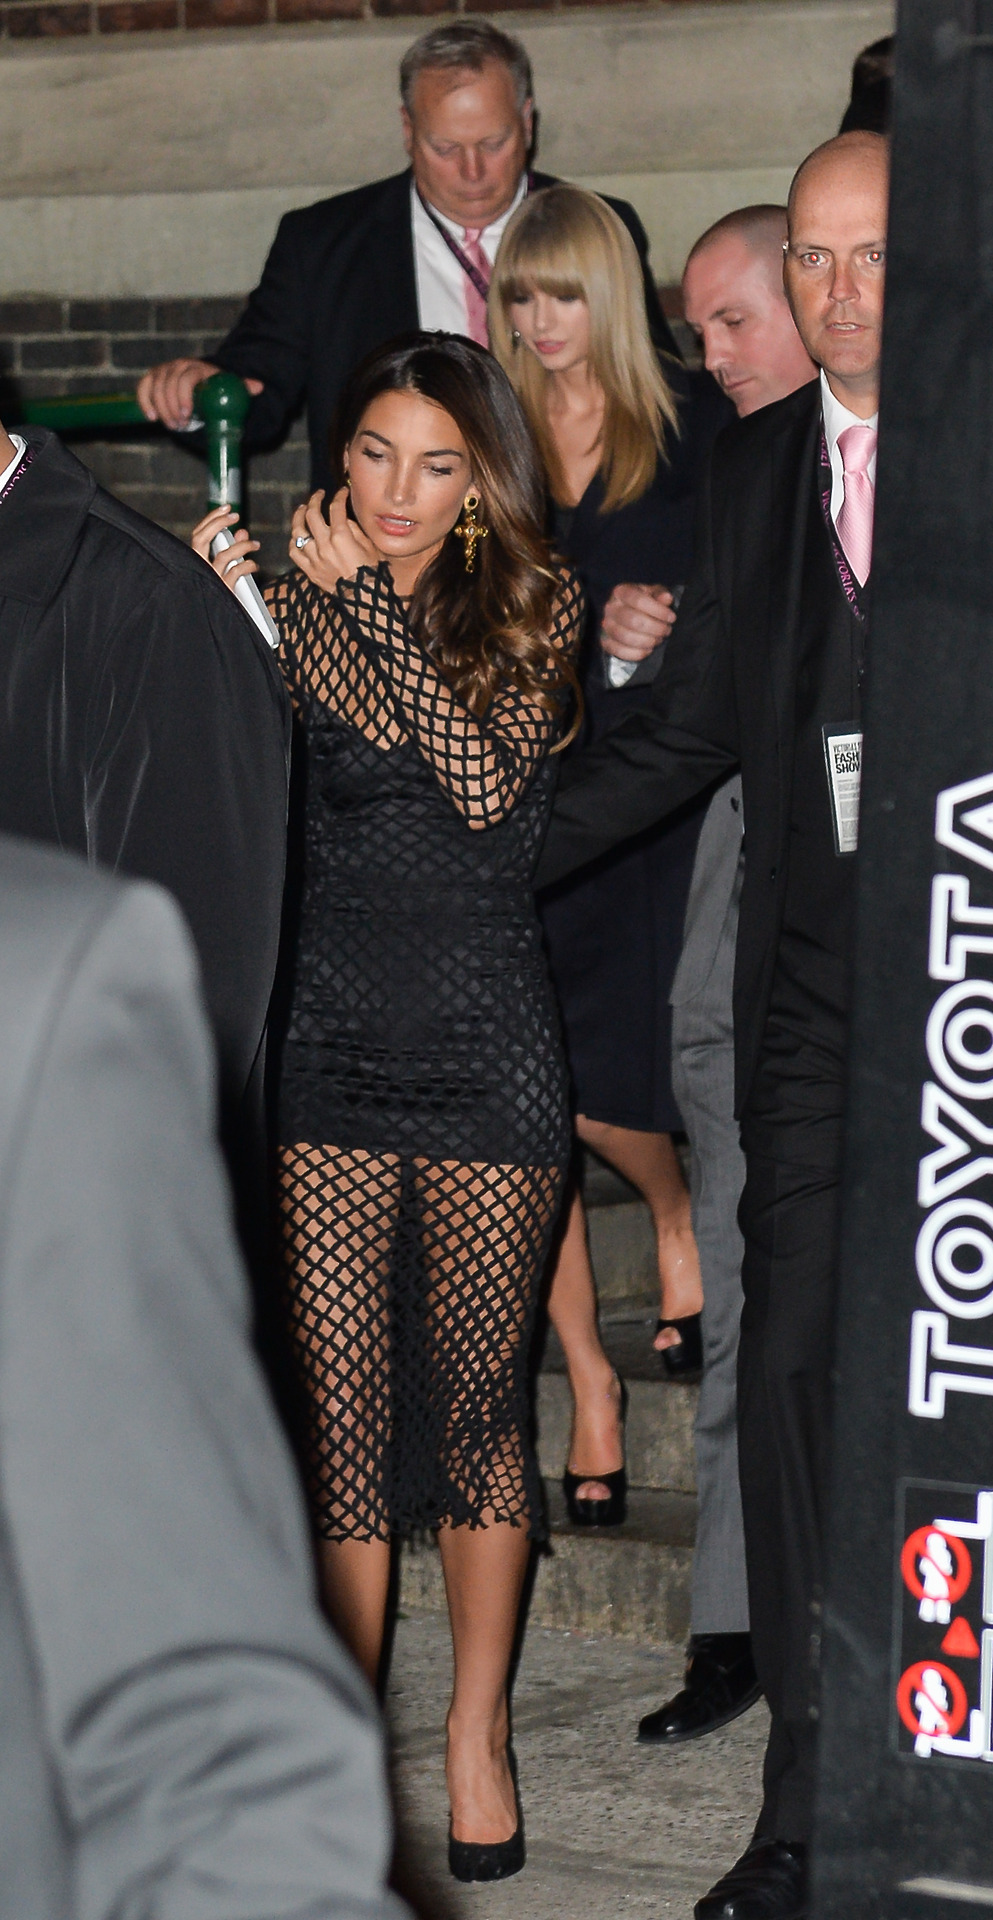 http://www.taylorpictures.net/albums/candids/2013/11-13leavingthevictoriassecretfashionshow/004.jpg